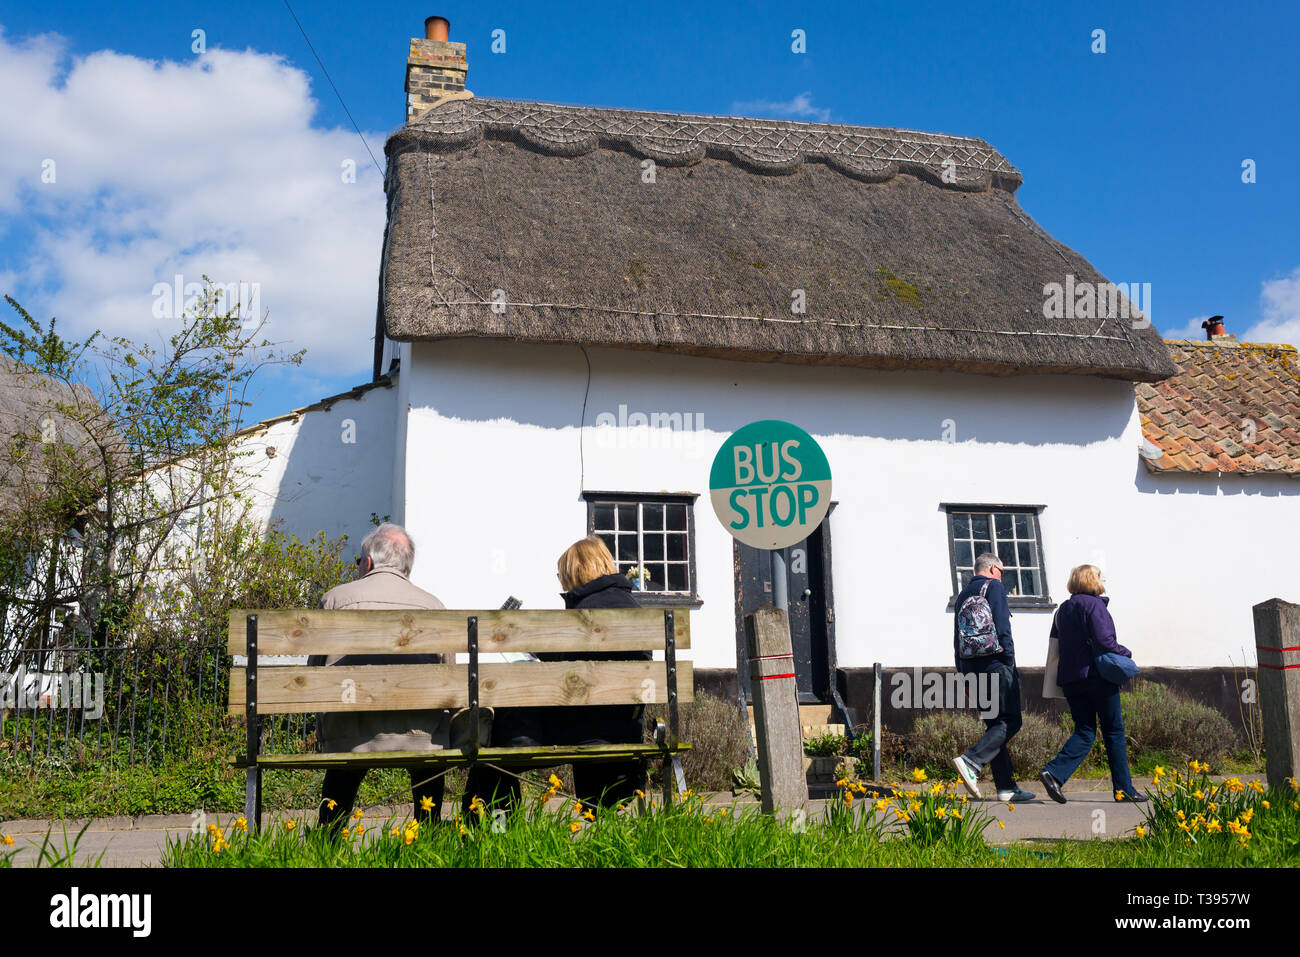 Thriplow, Cambridge, England, UK - March 2019: Senior old couple sitting on a wooden bench at a village bus stop with traditional British cottage - Stock Image